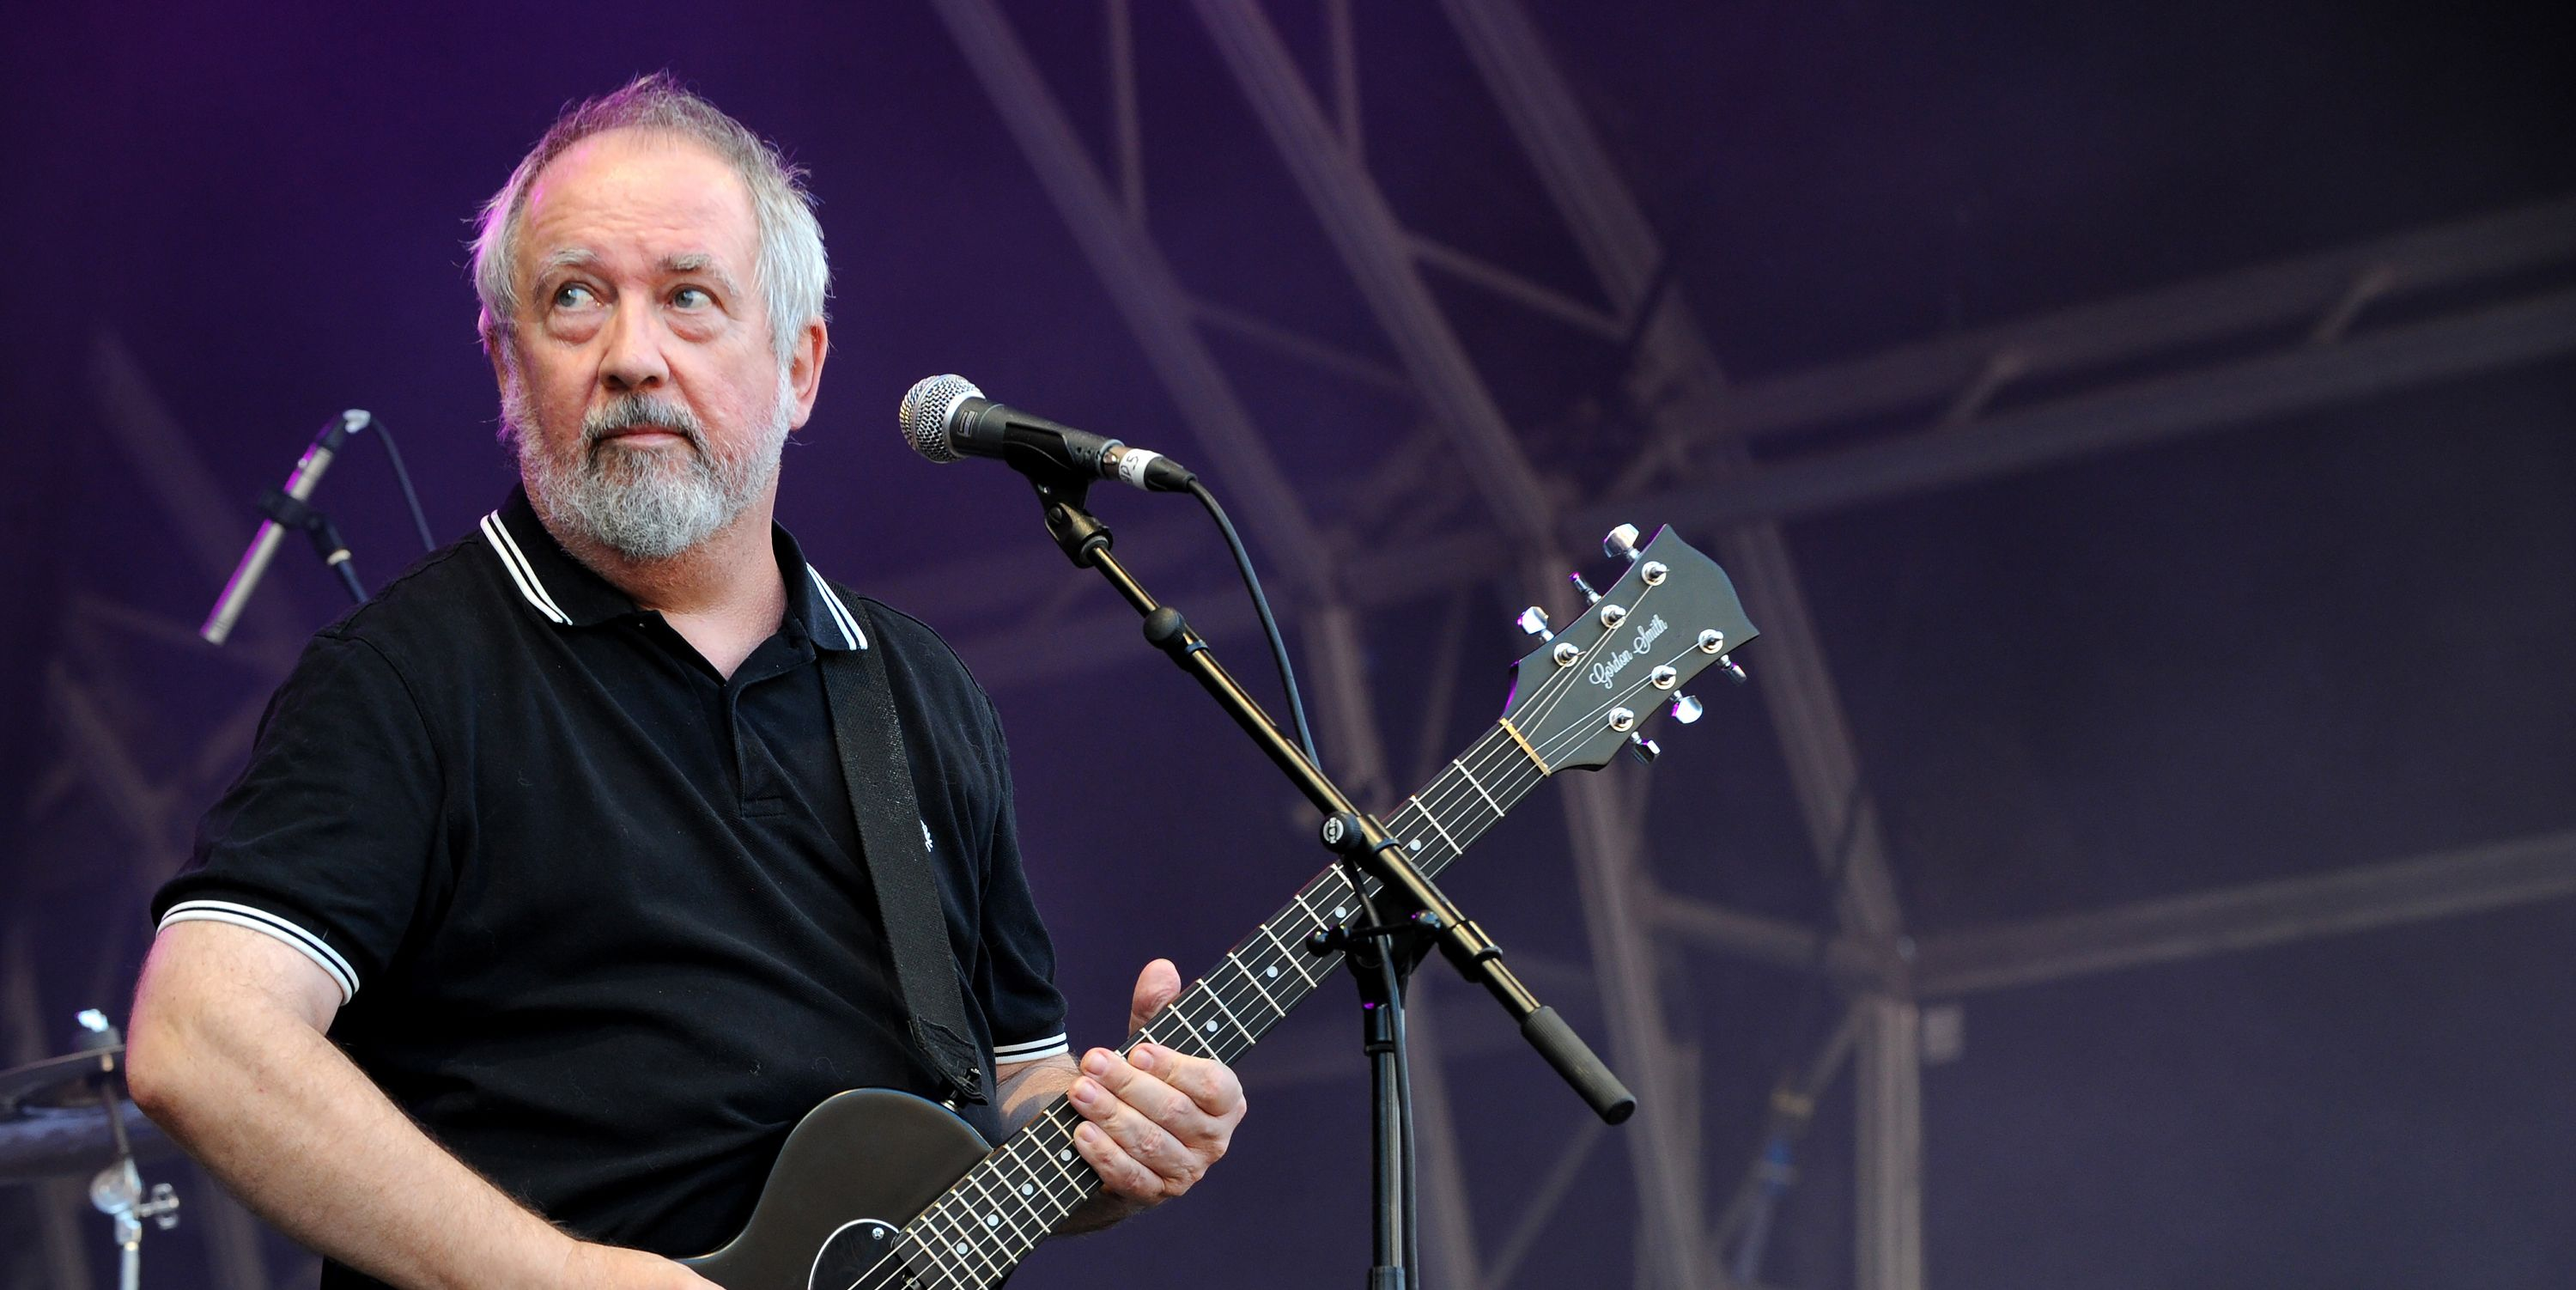 Pete Shelley, the singer of the punk band Buzzcocks, died at the age of 63